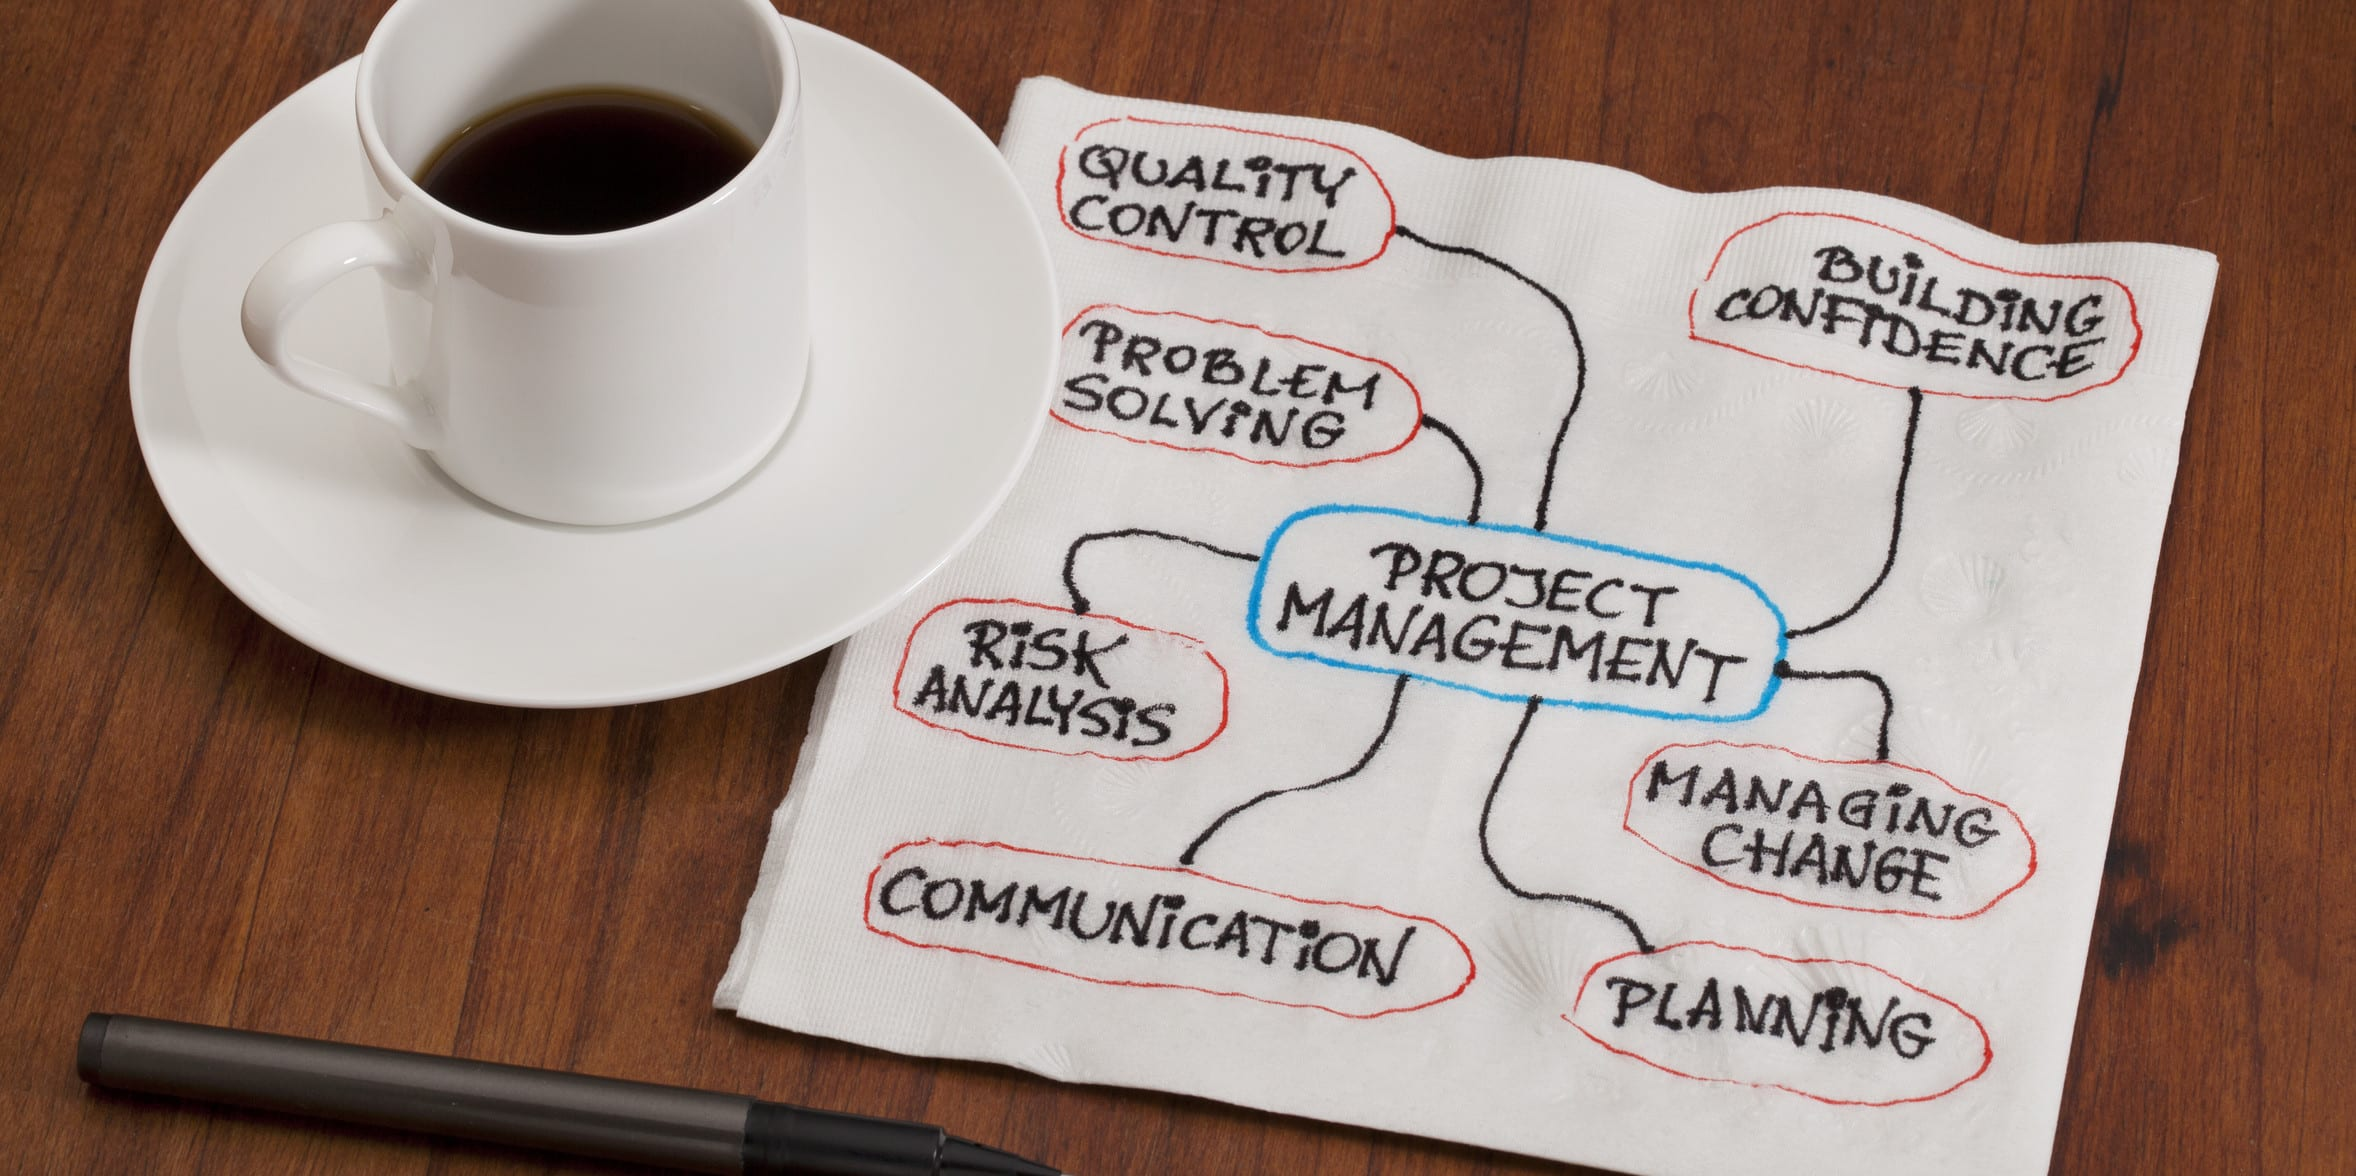 AxerIT Governance of Enterprise IT - Consulting, Coaching, Leadership